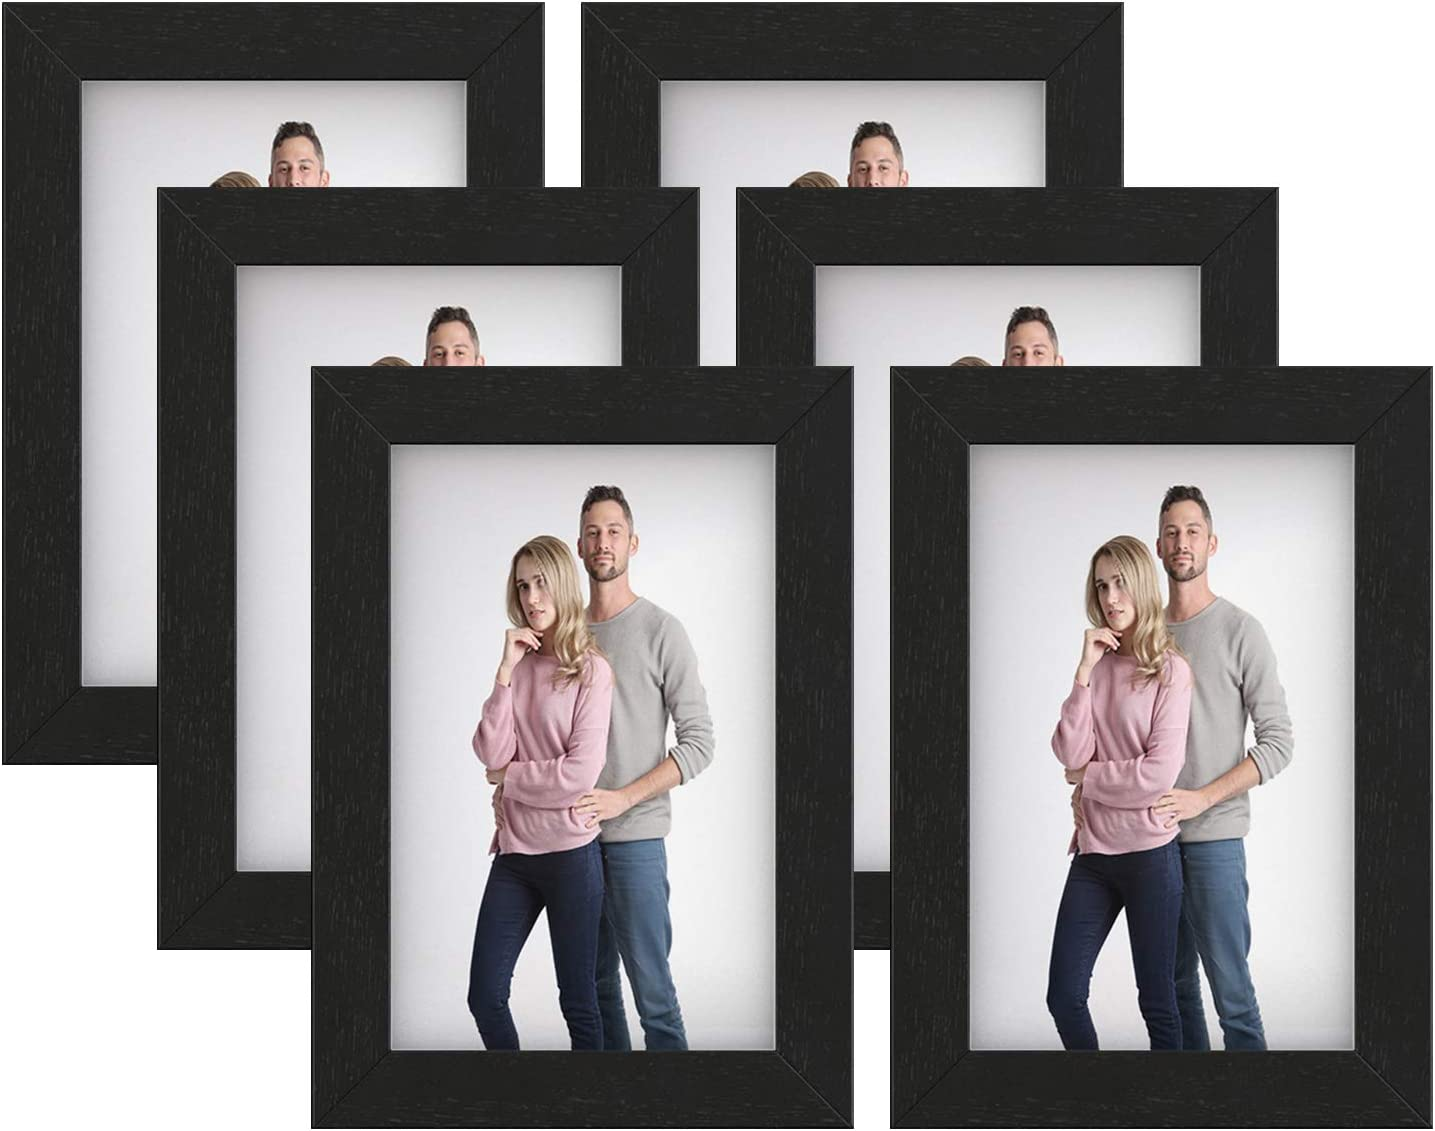 SONGMICS Picture Frames, Set of 6 Photo Frames for 4 x 6-Inch Ph